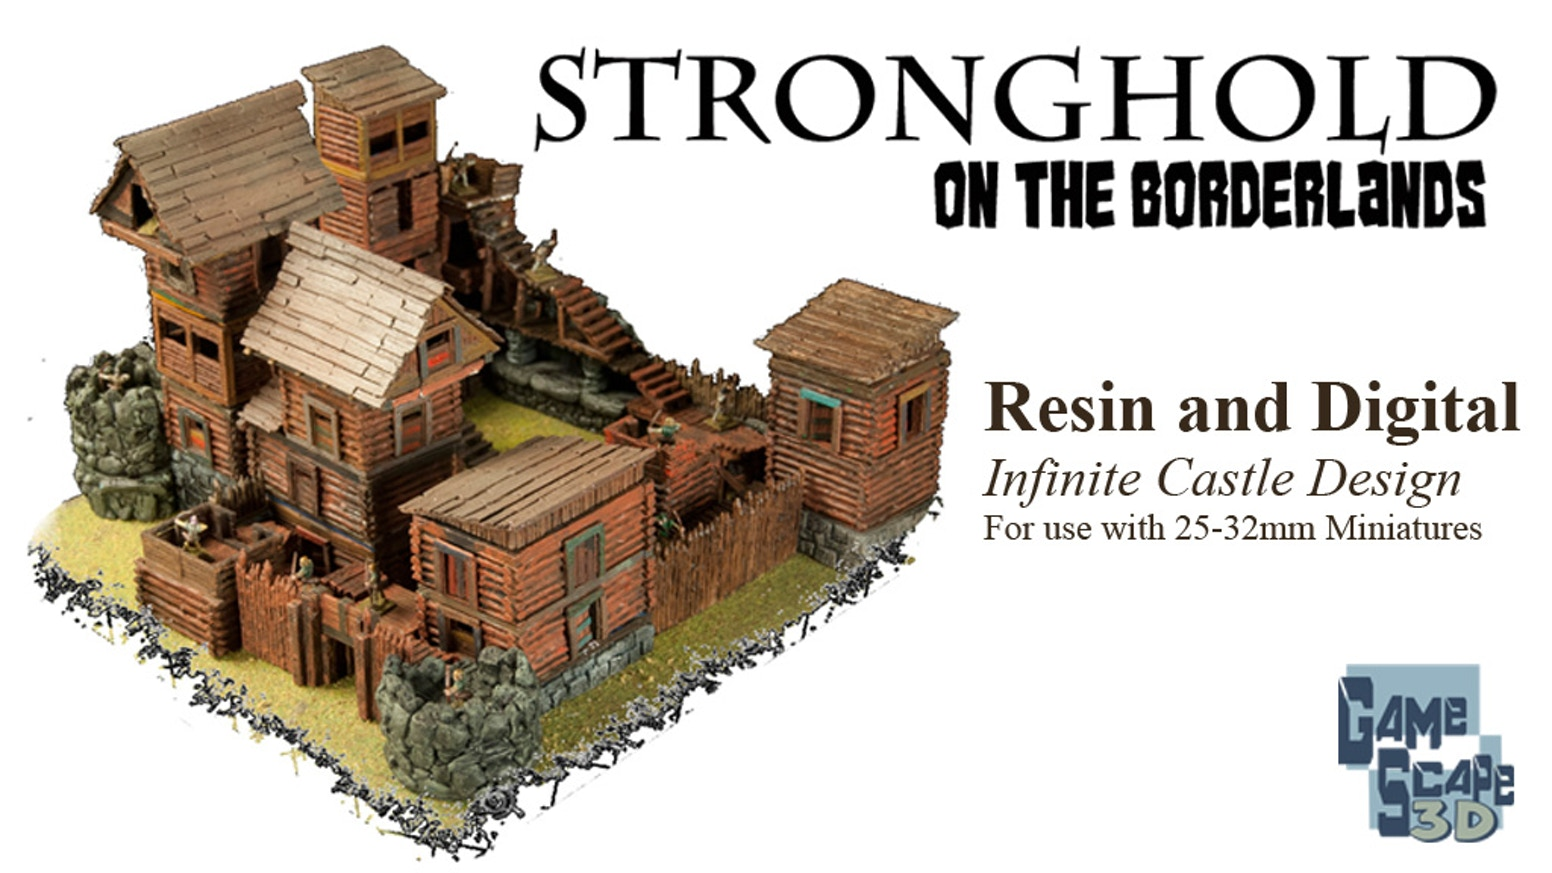 Infinite castle modular design system. +200 digital pieces for 3D Printing AND a resin borderland fort perfect for 25-32mm miniatures!